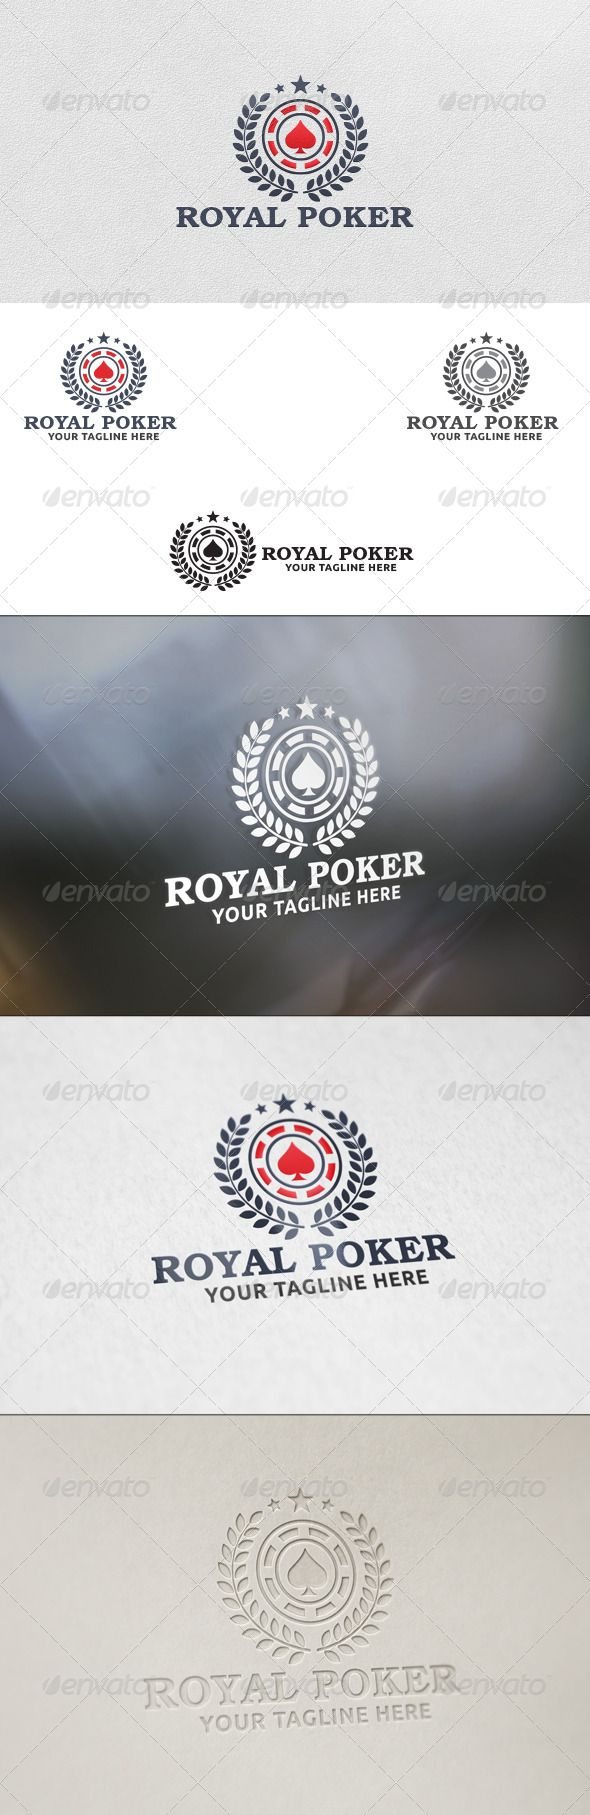 Royal Poker - Logo Template